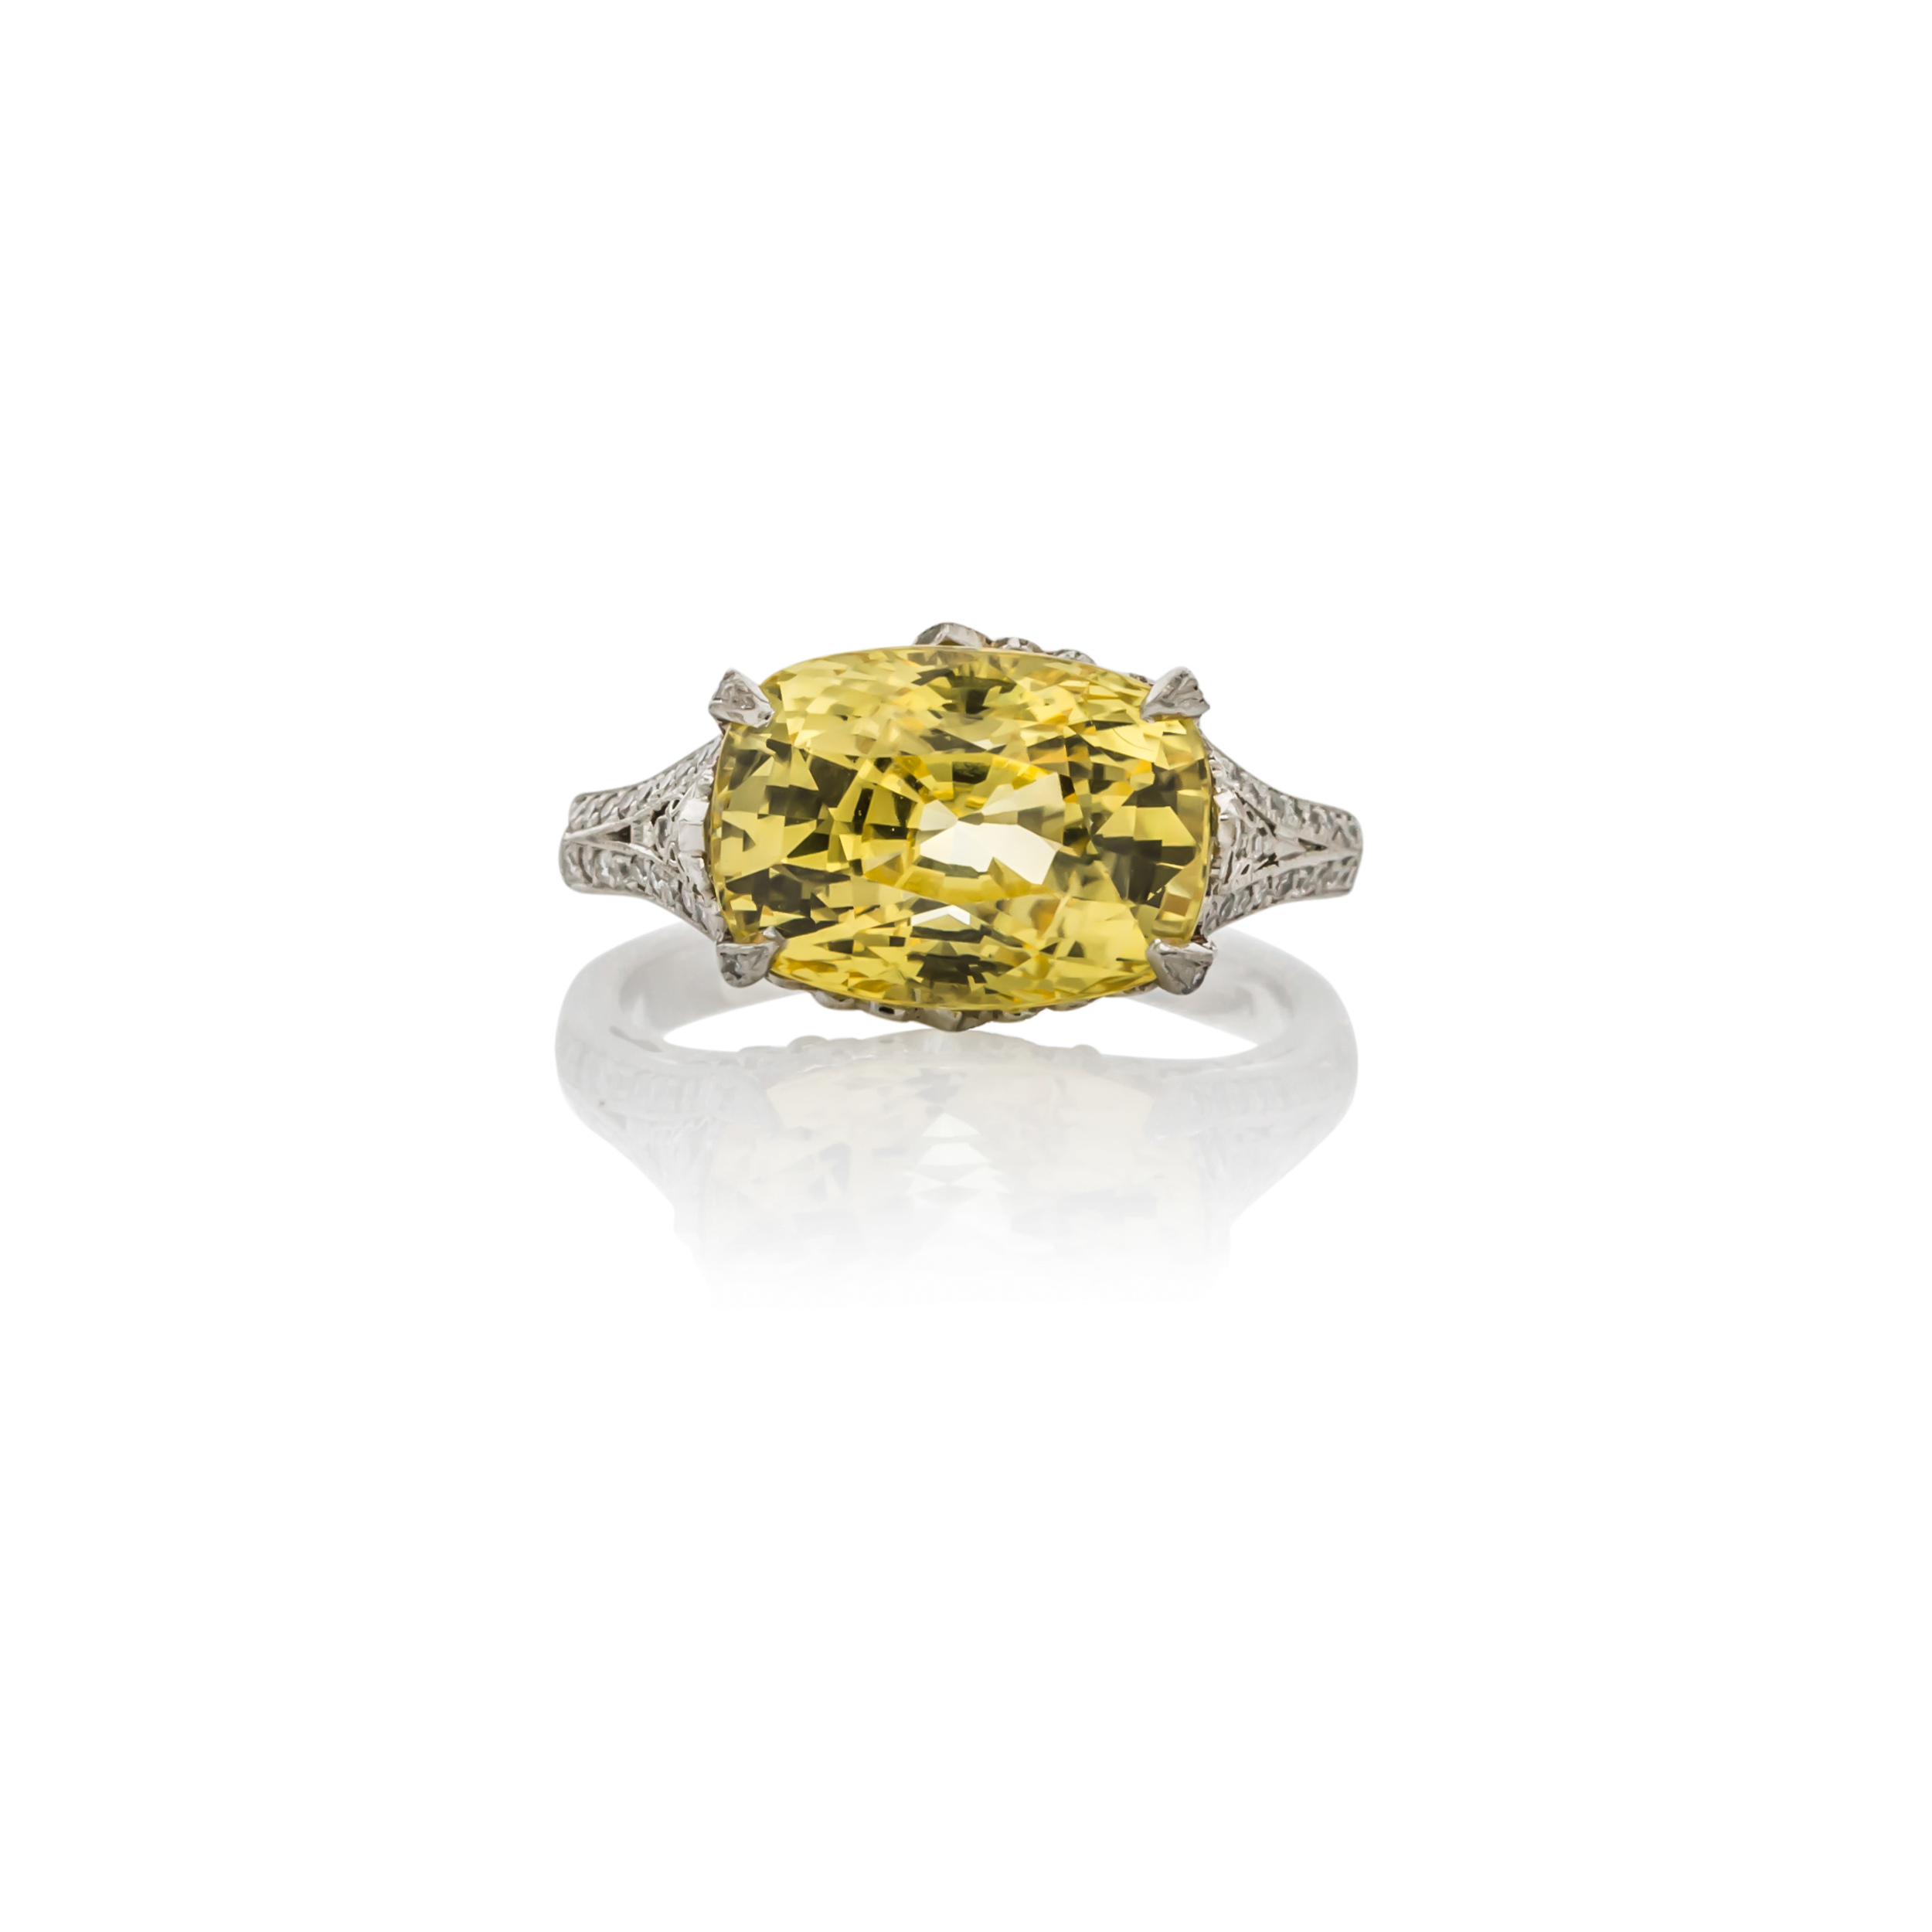 CUSTOM YELLOW SAPPHIRE AND DIAMOND RING